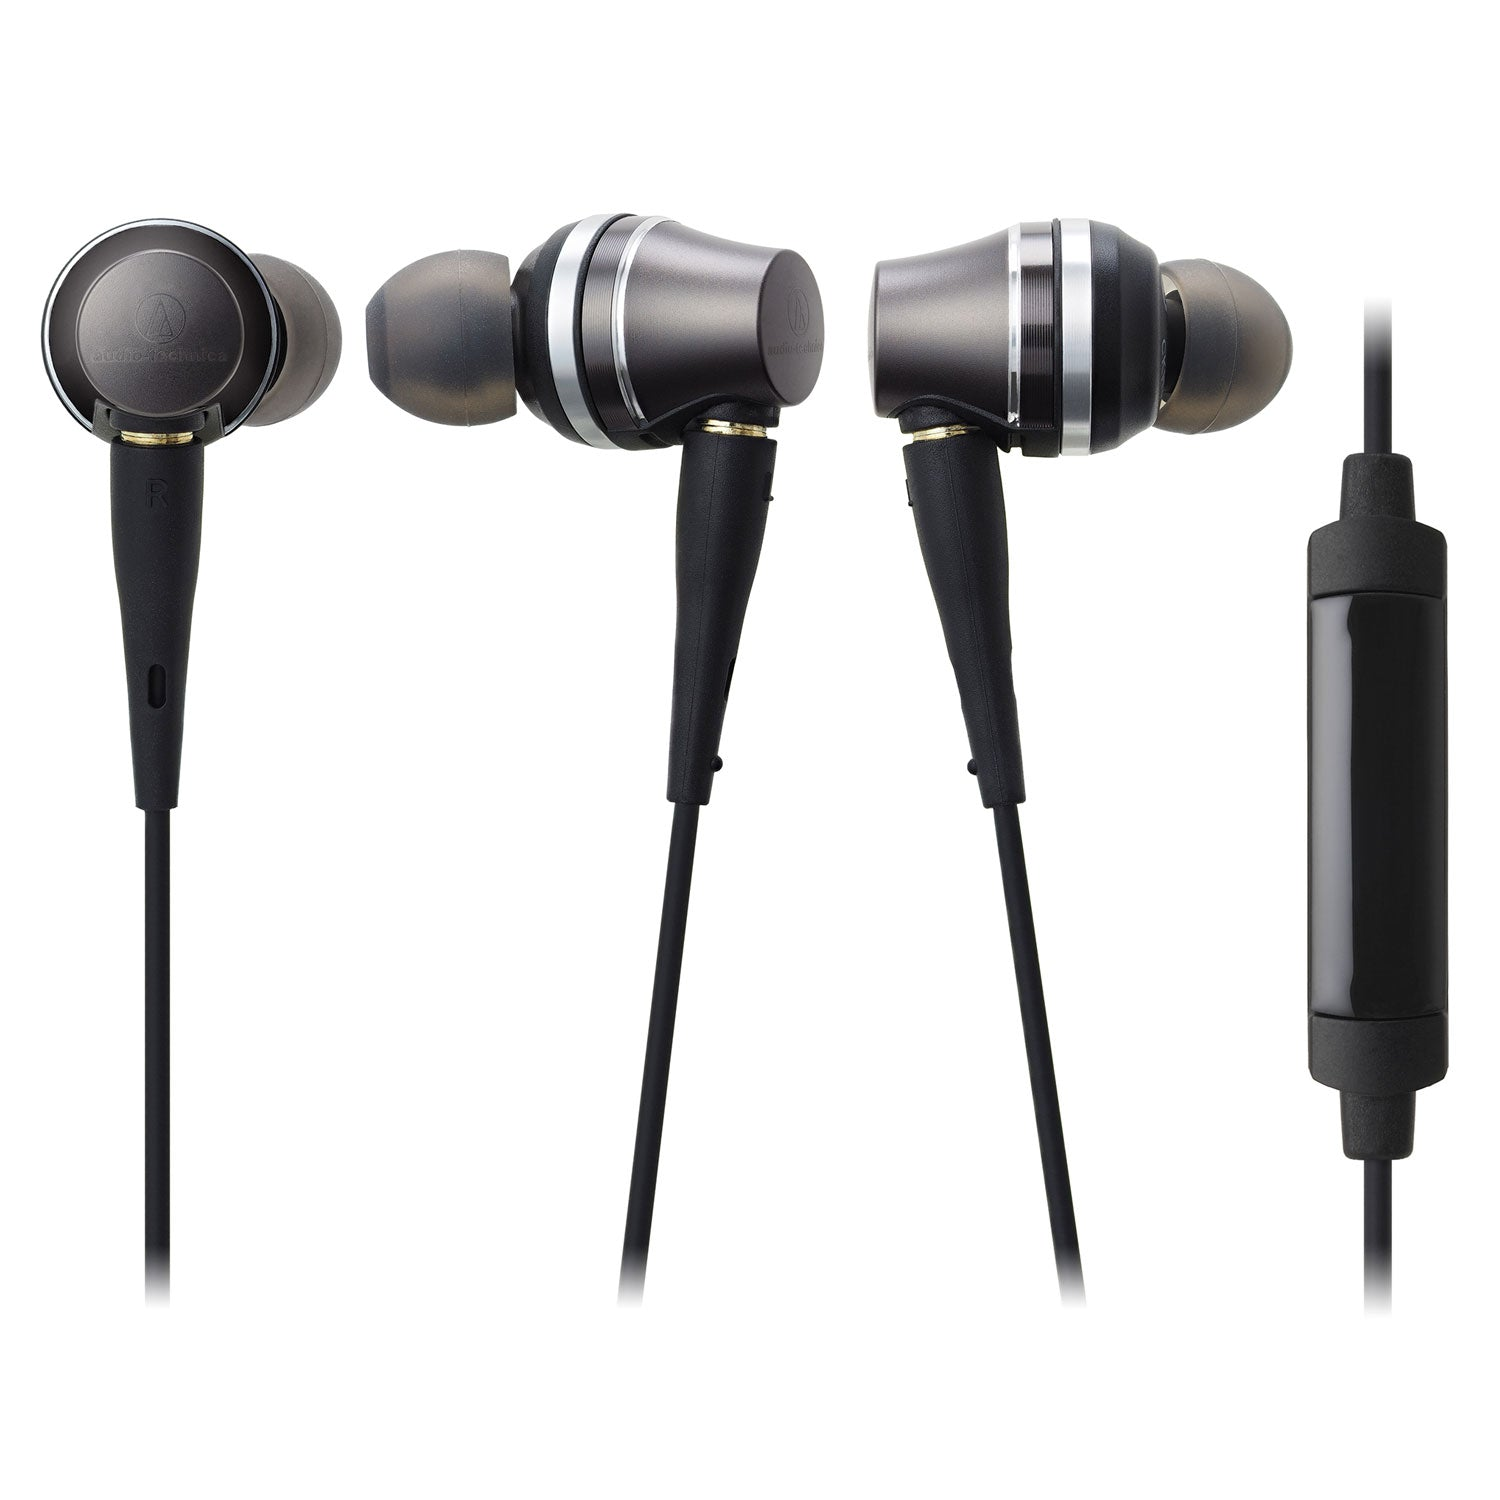 Audio Technica ATH-CKR90is In-Ear Headphones